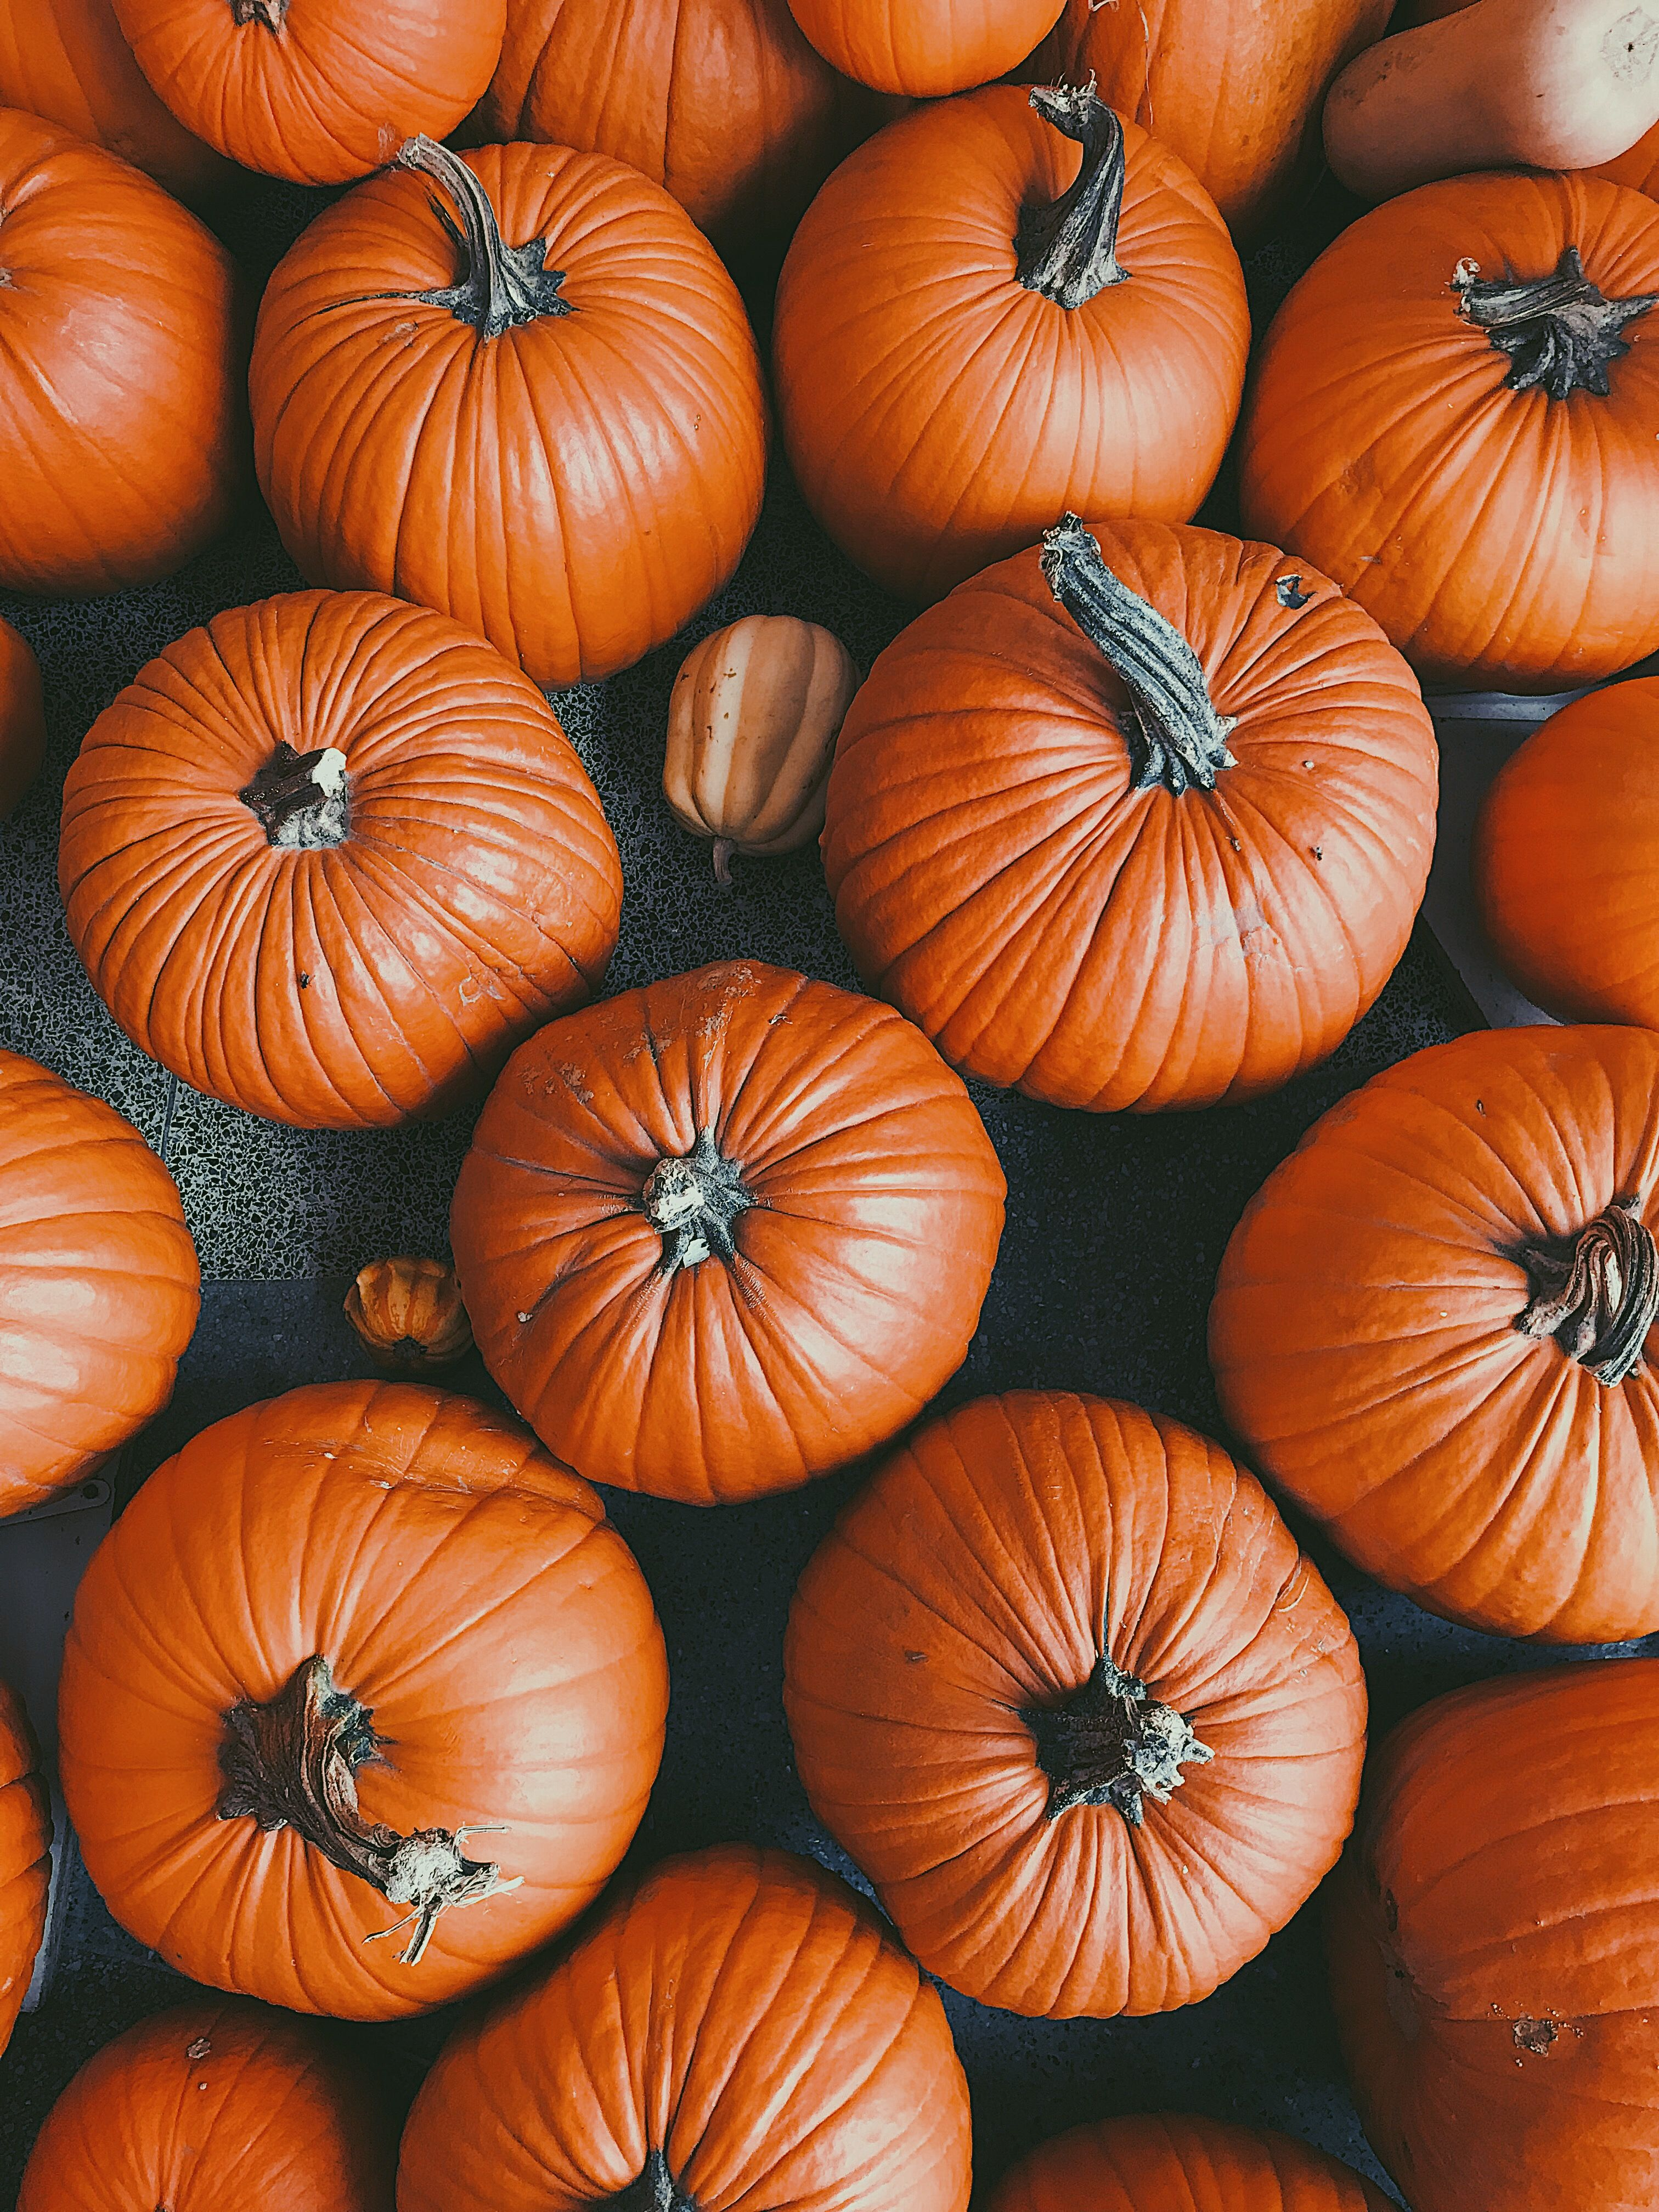 Pumpkins Fall Halloween Wallpaper Background Iphone Android Pattern Vsco Cute Halloween Wallpaper Pumpkin Wallpaper Halloween Wallpaper Backgrounds